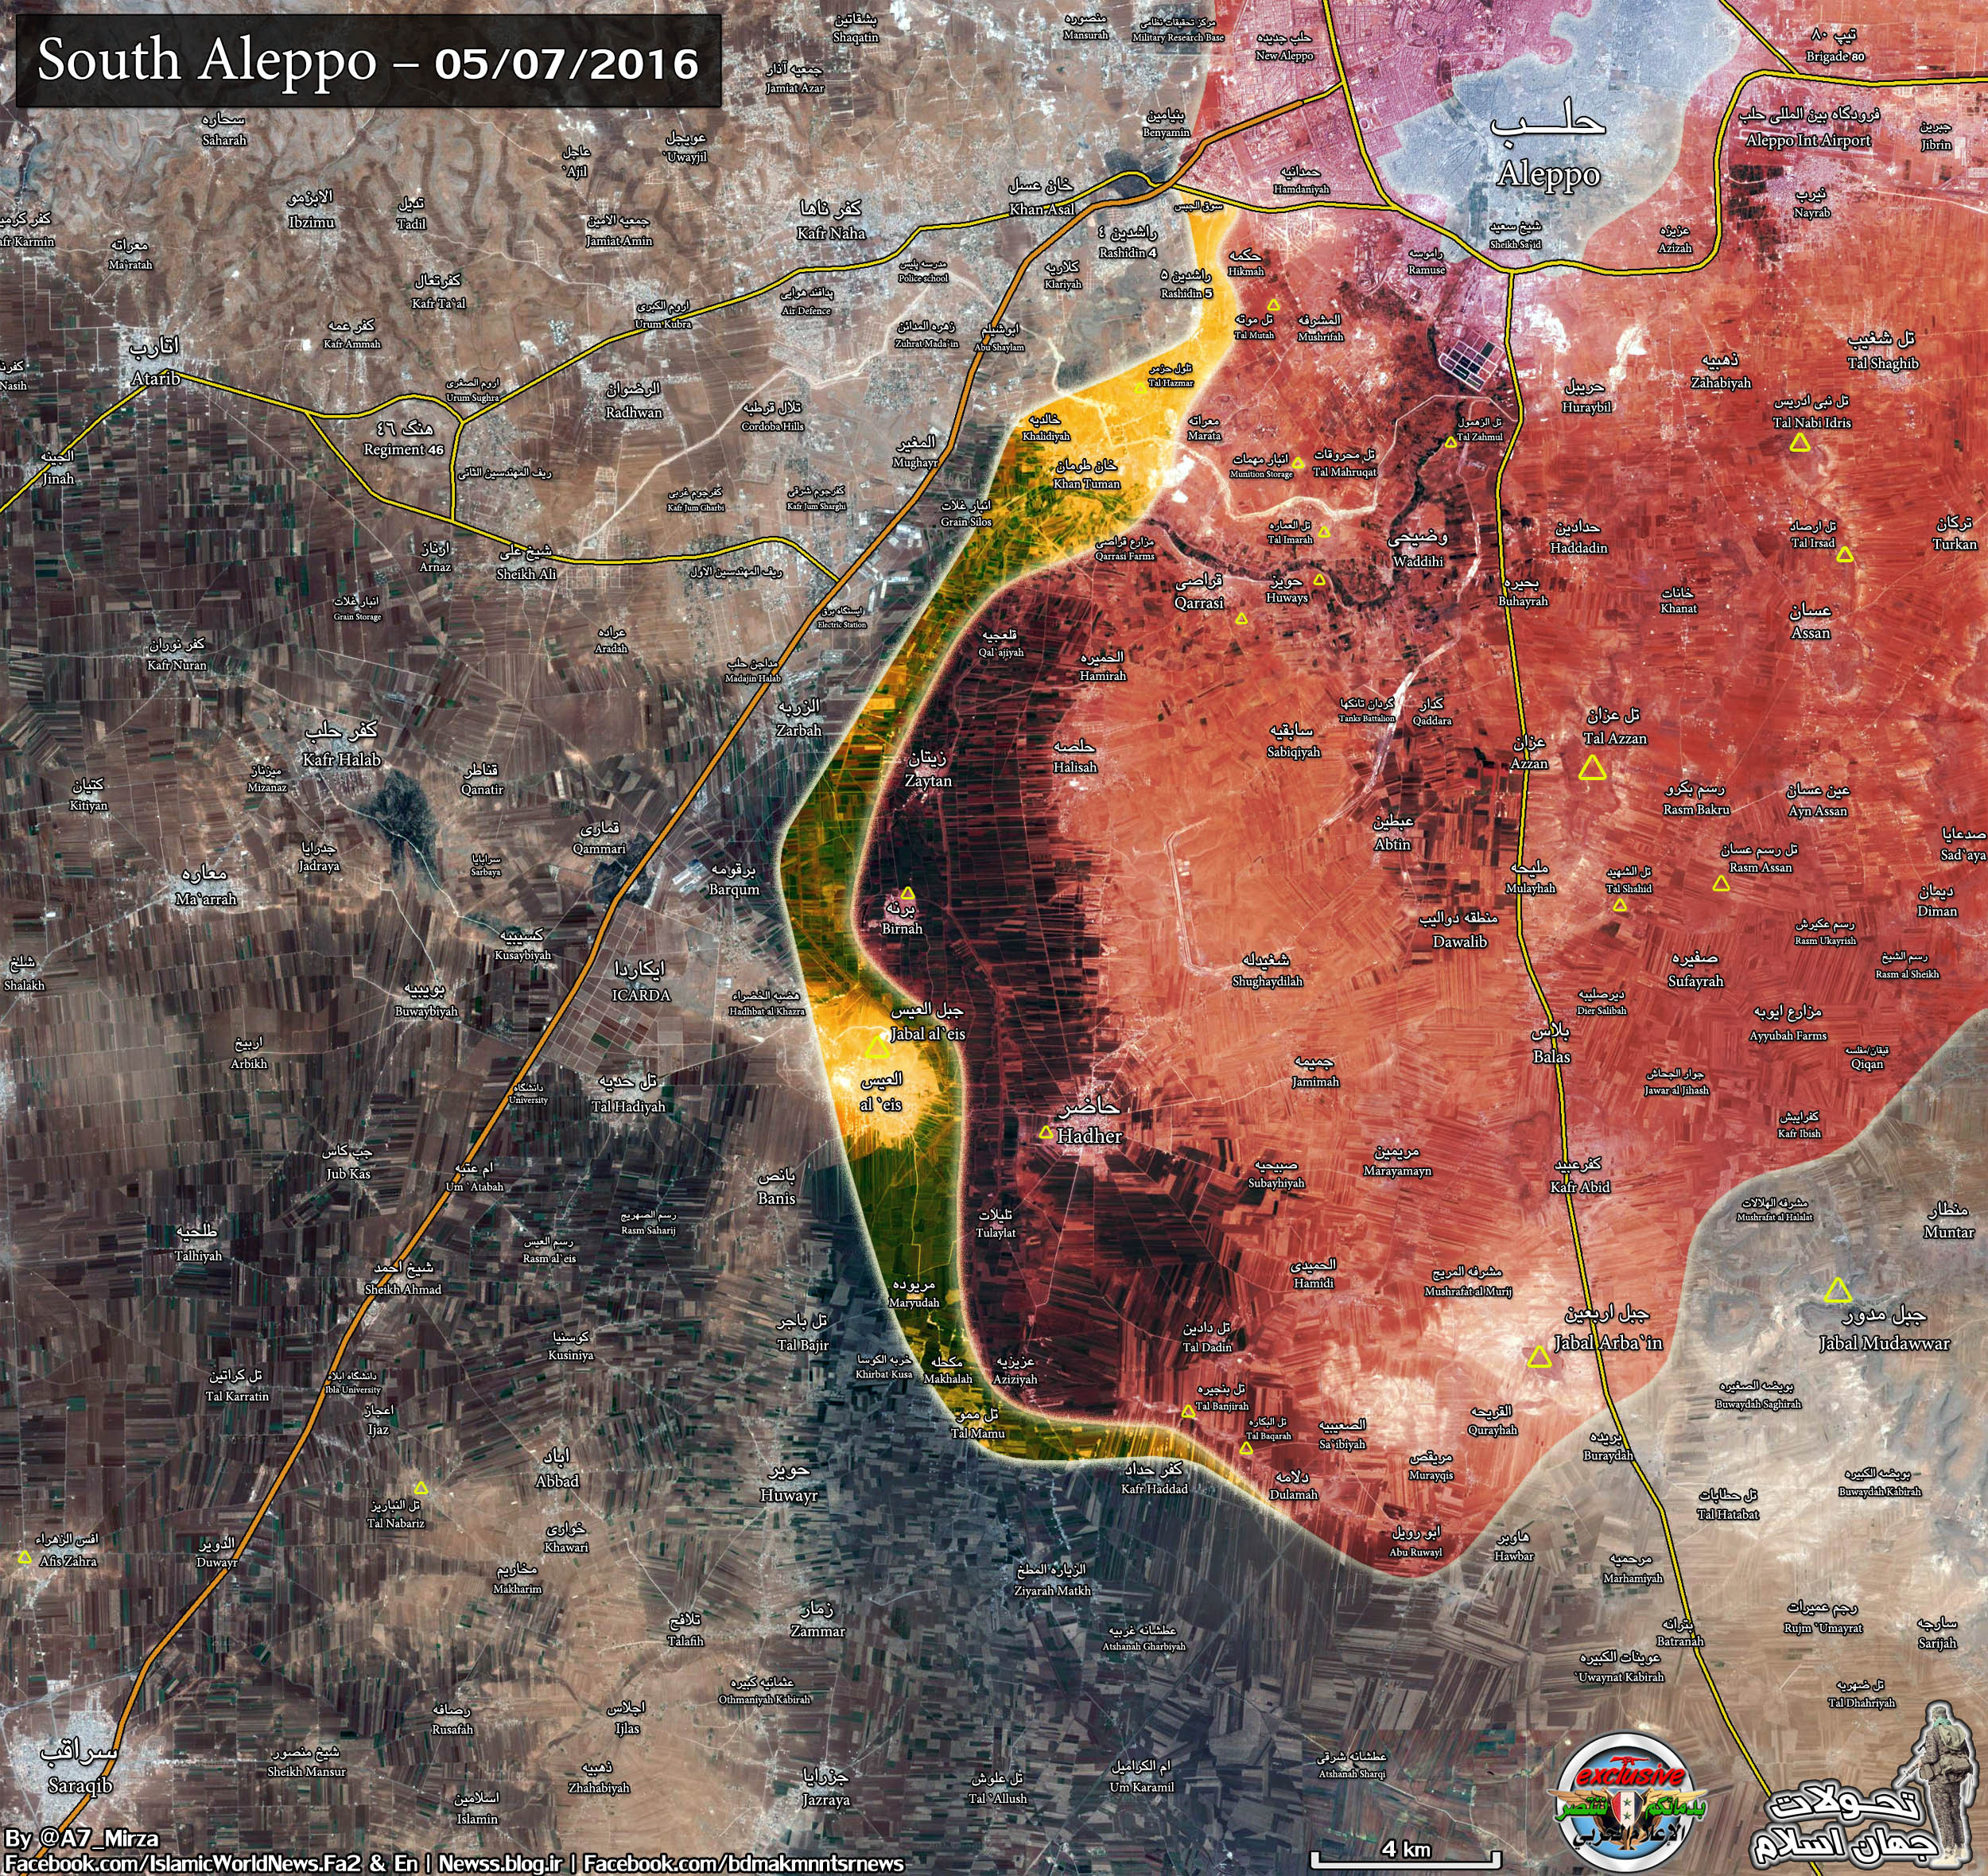 Syria: Heavy Clashes near Khan Touman in Aleppo Province